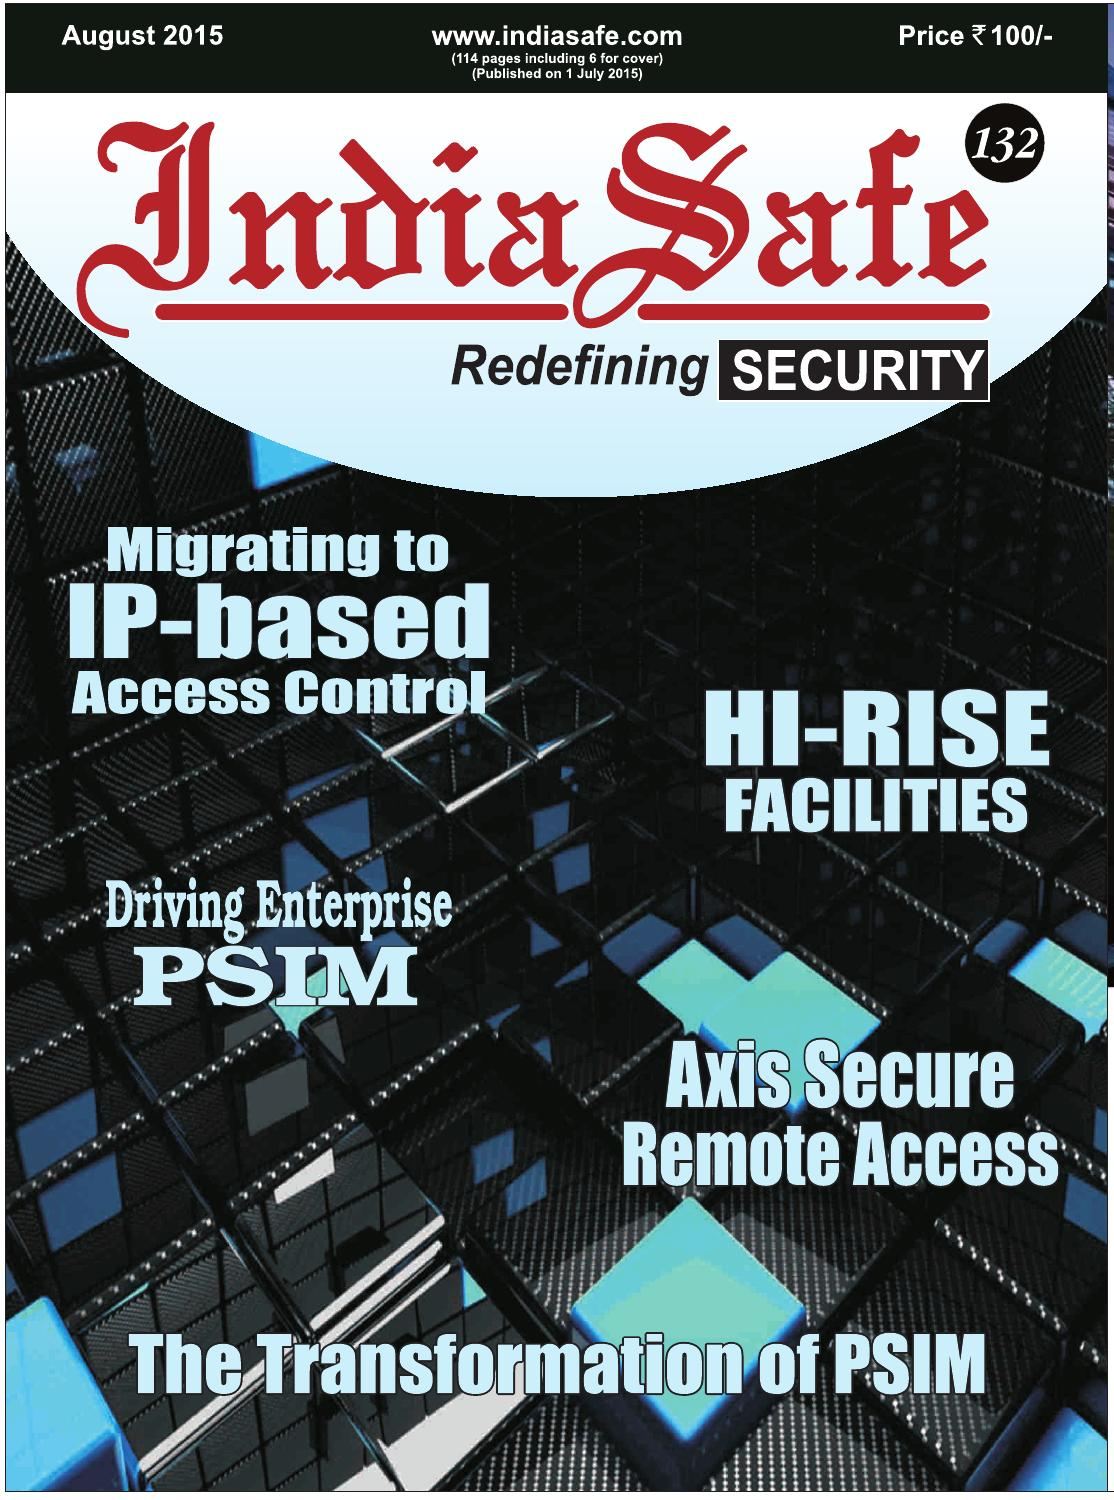 Final August2015 By Indiasafe Issuu Systek Ups Circuit Diagram